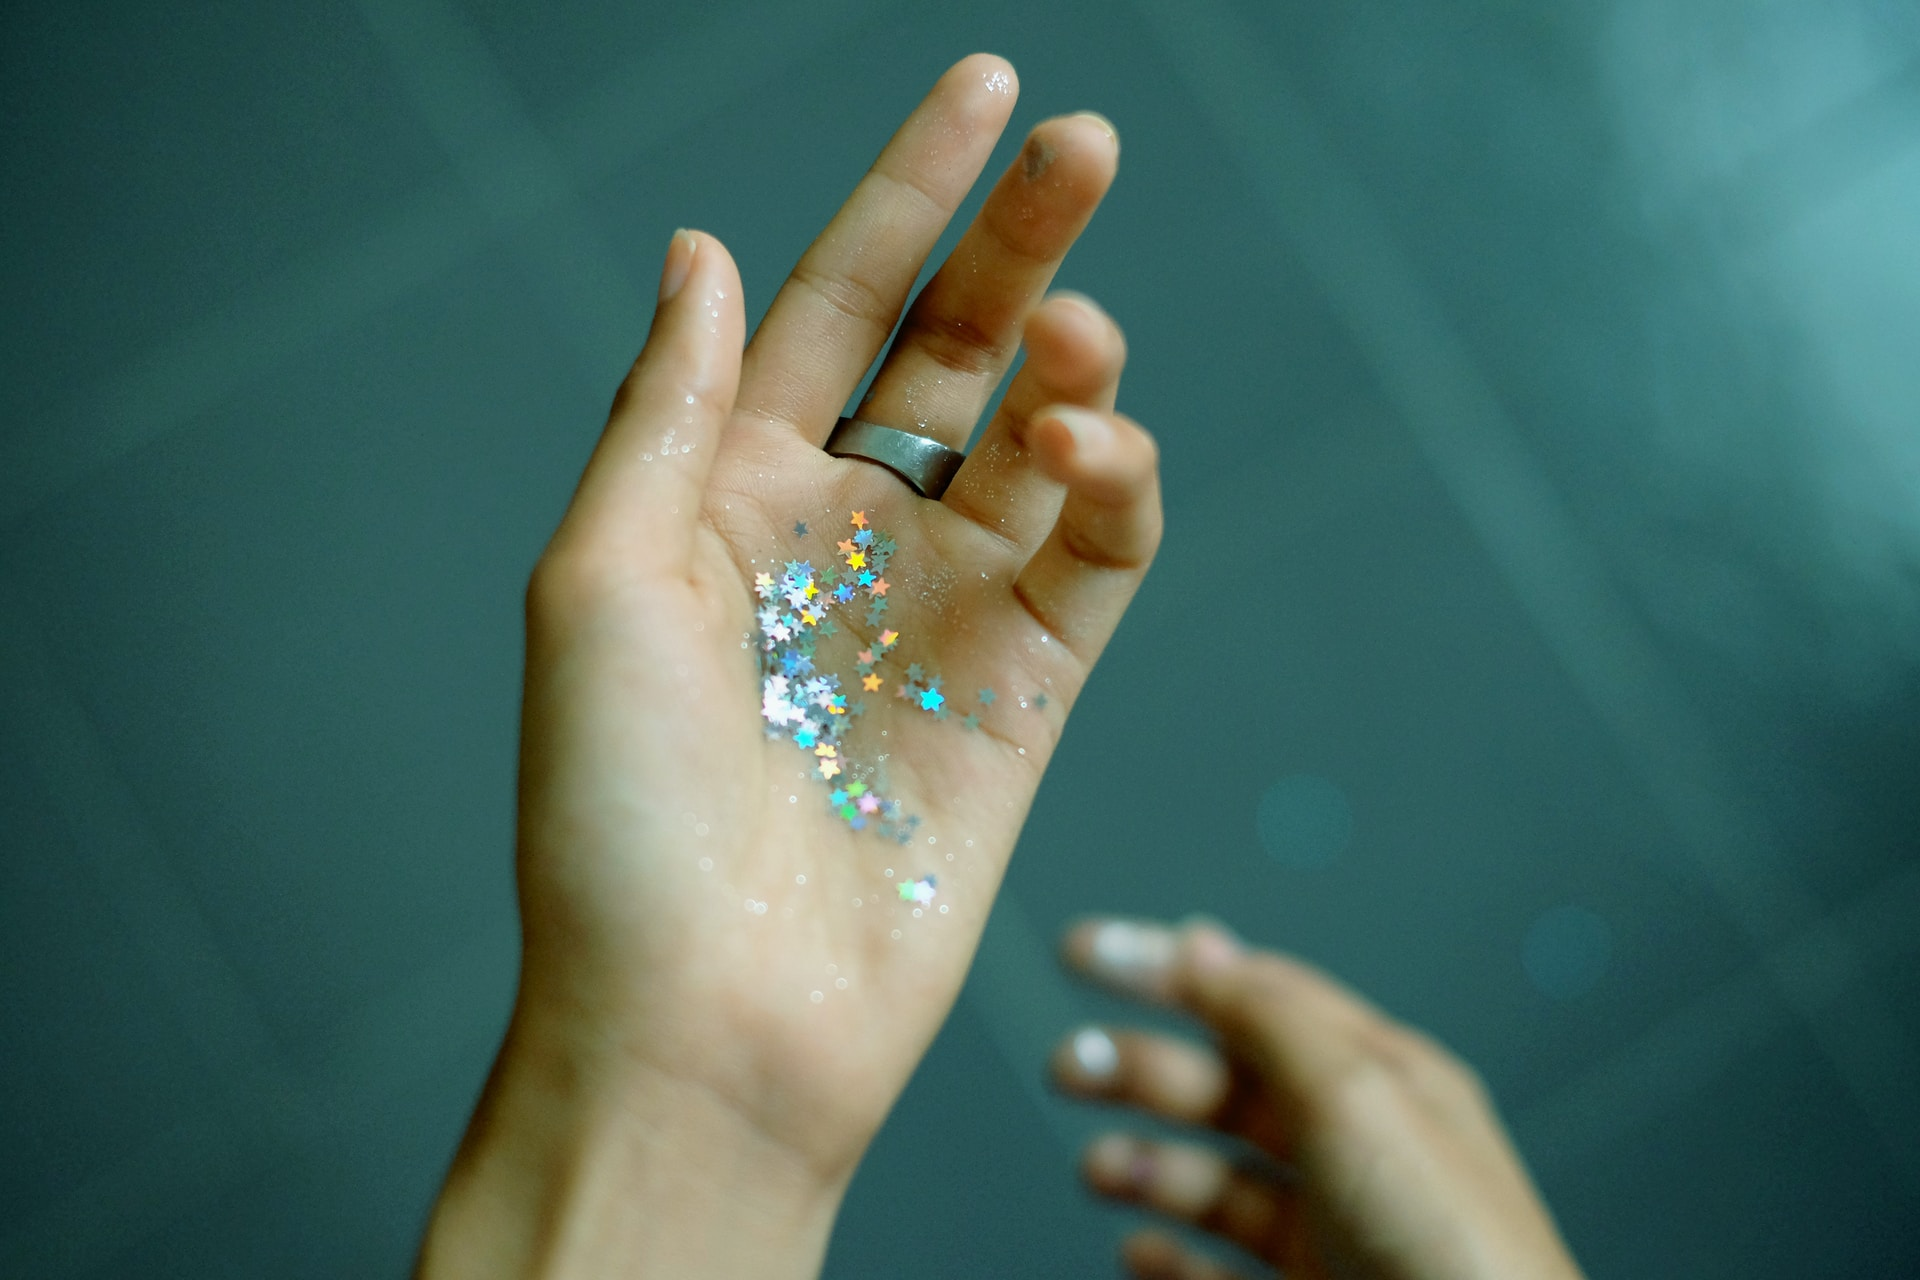 person showing hands with glitters